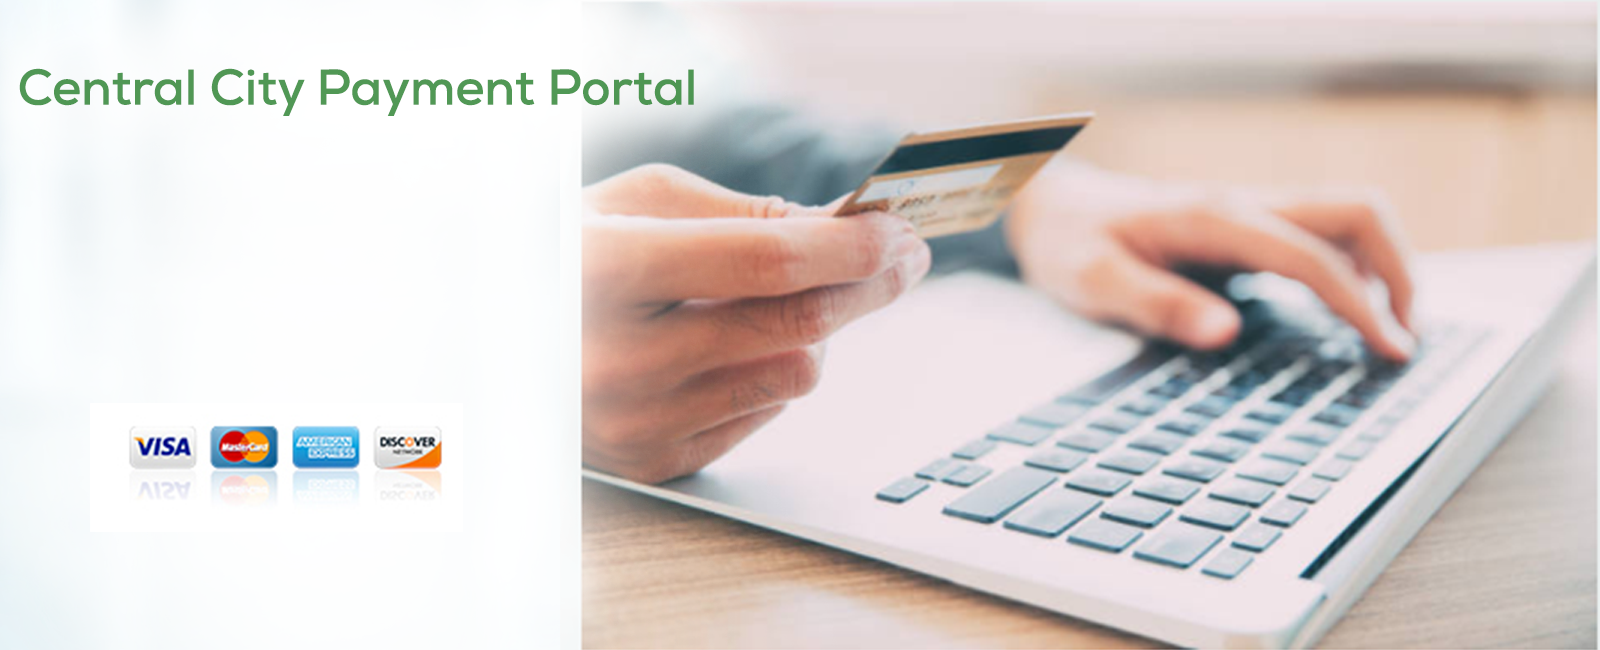 Images with hand holding a credit card at a computer for Payment Portal